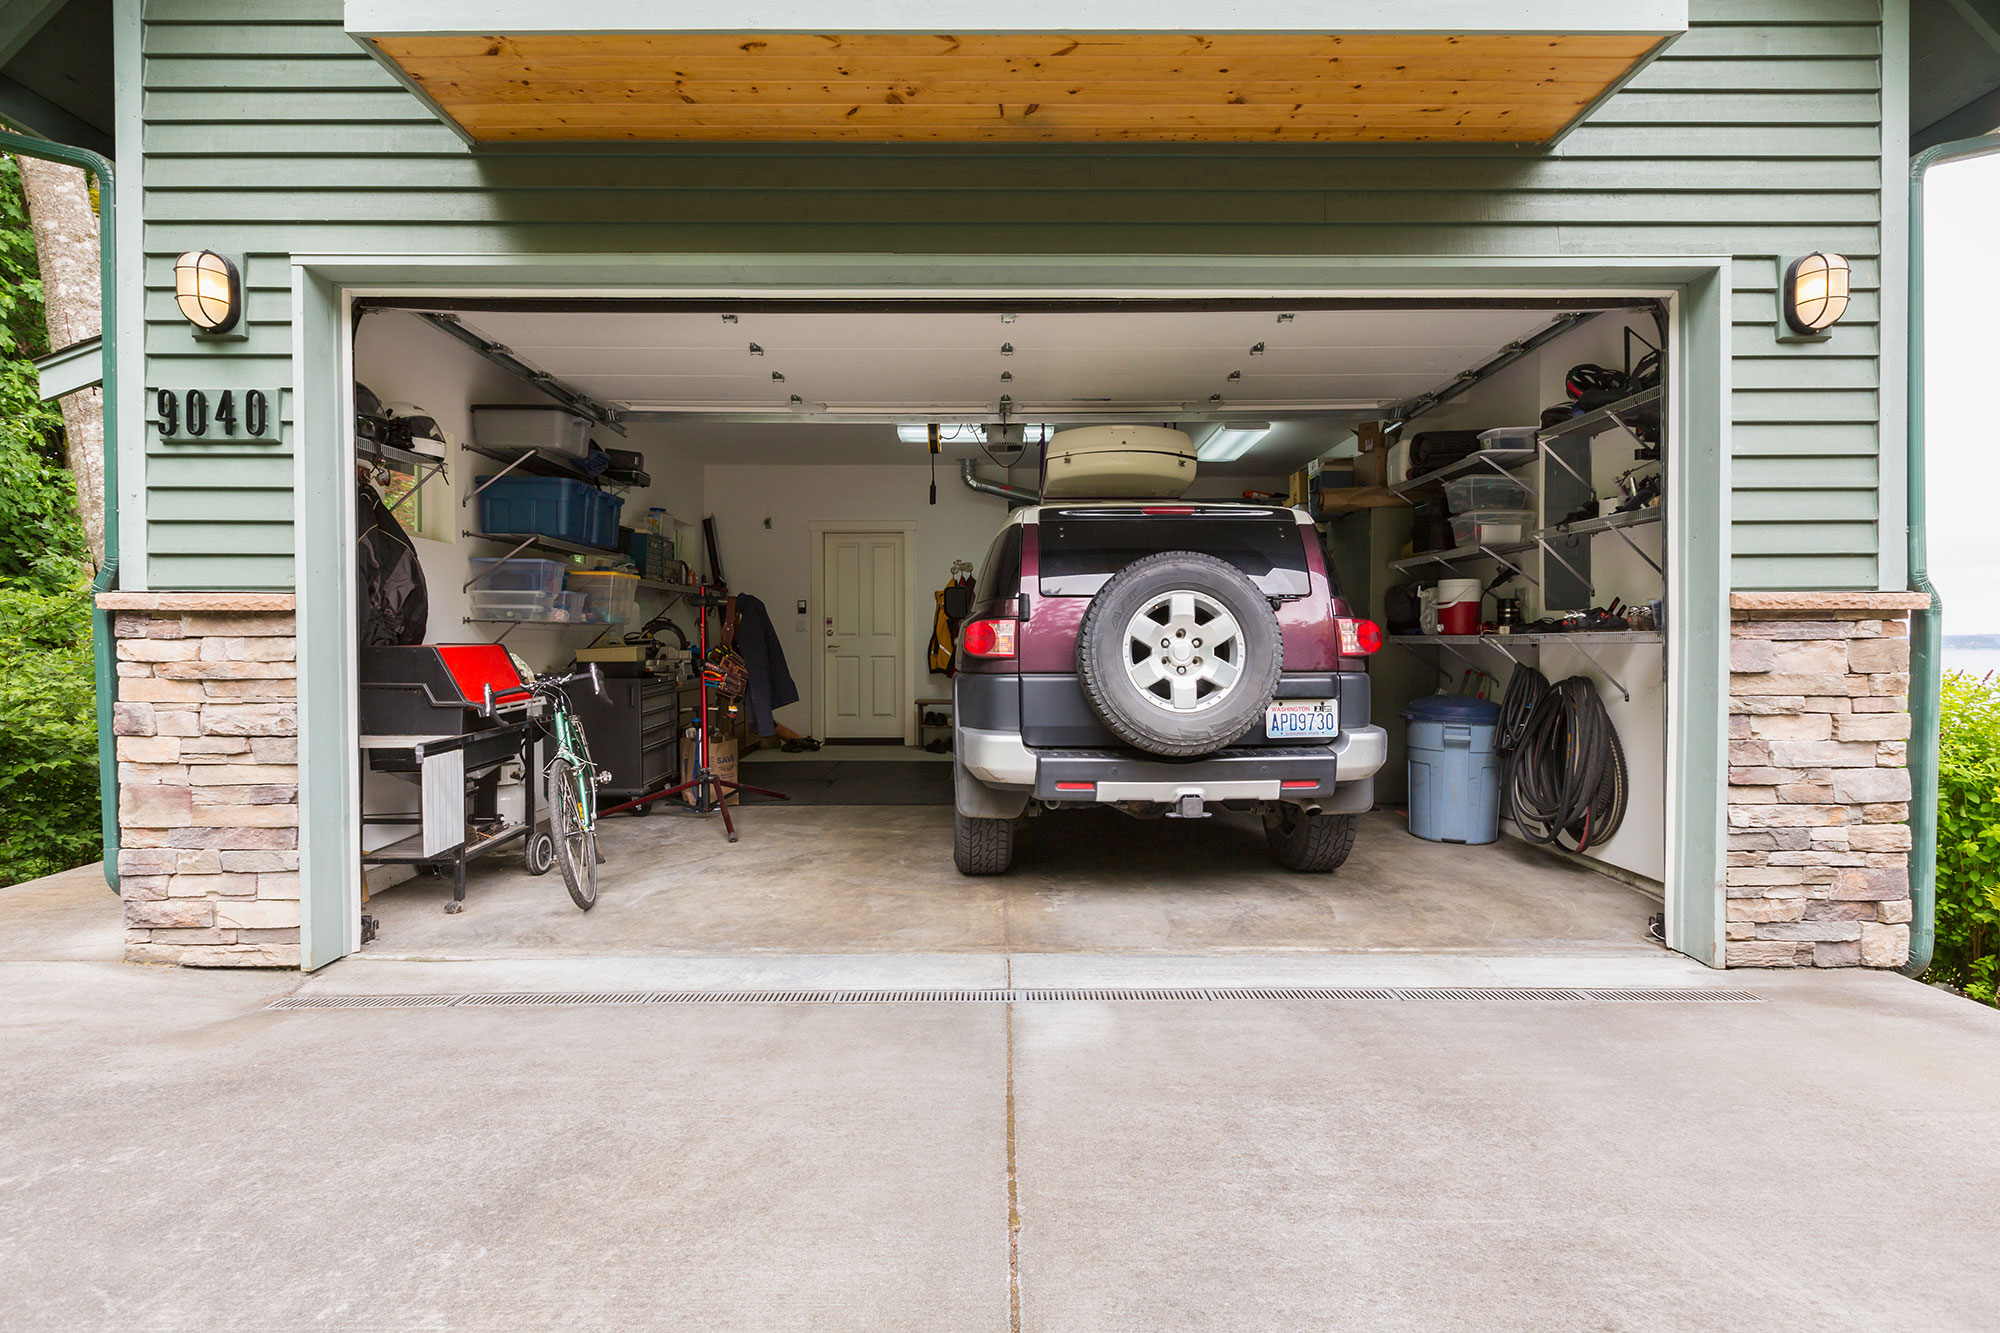 Open residential garage with car, bicycle and other possessions visible